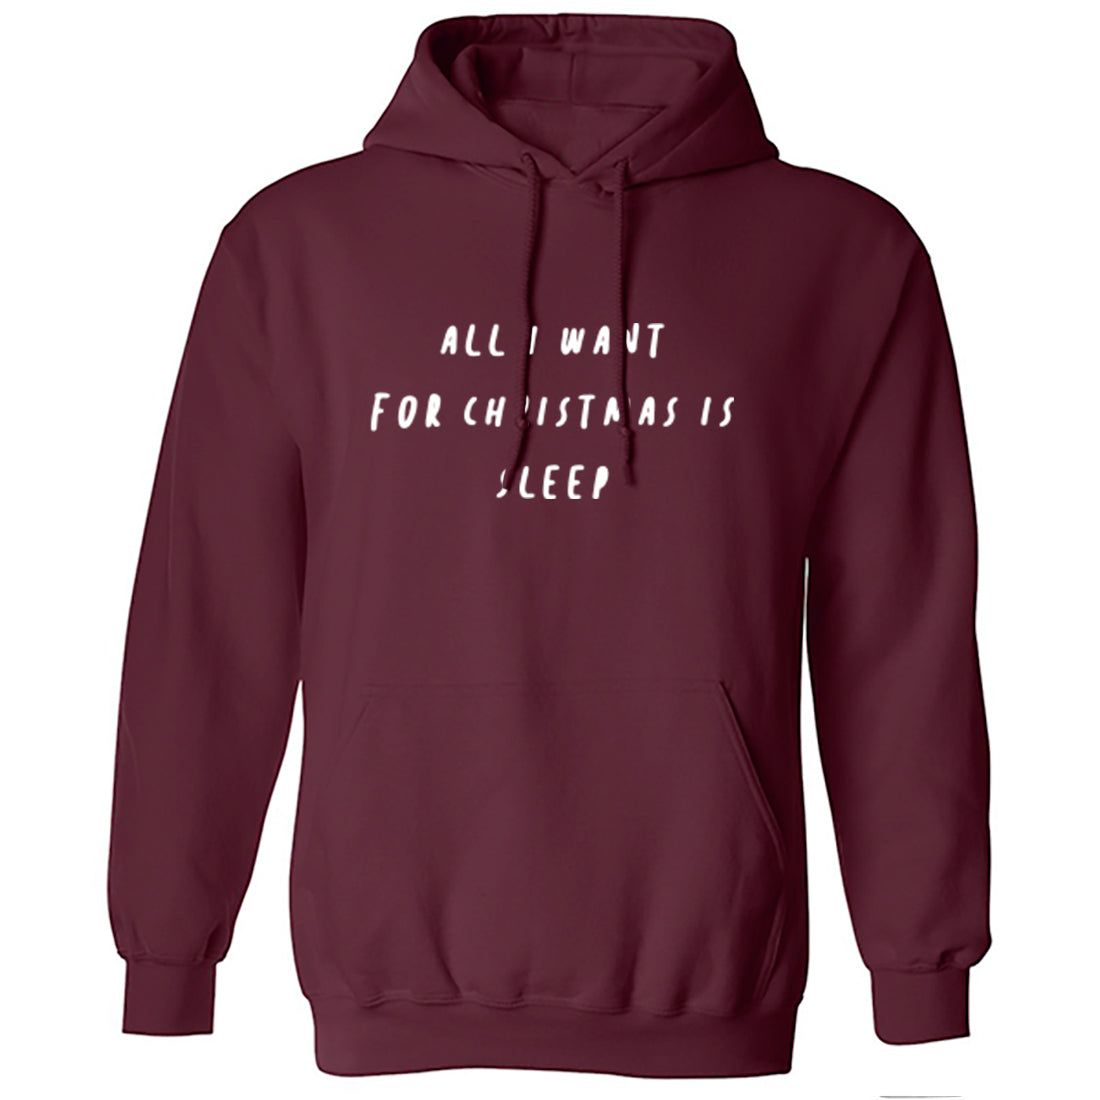 All I Want For Christmas Is Sleep Unisex Hoodie K2477 - Illustrated Identity Ltd.